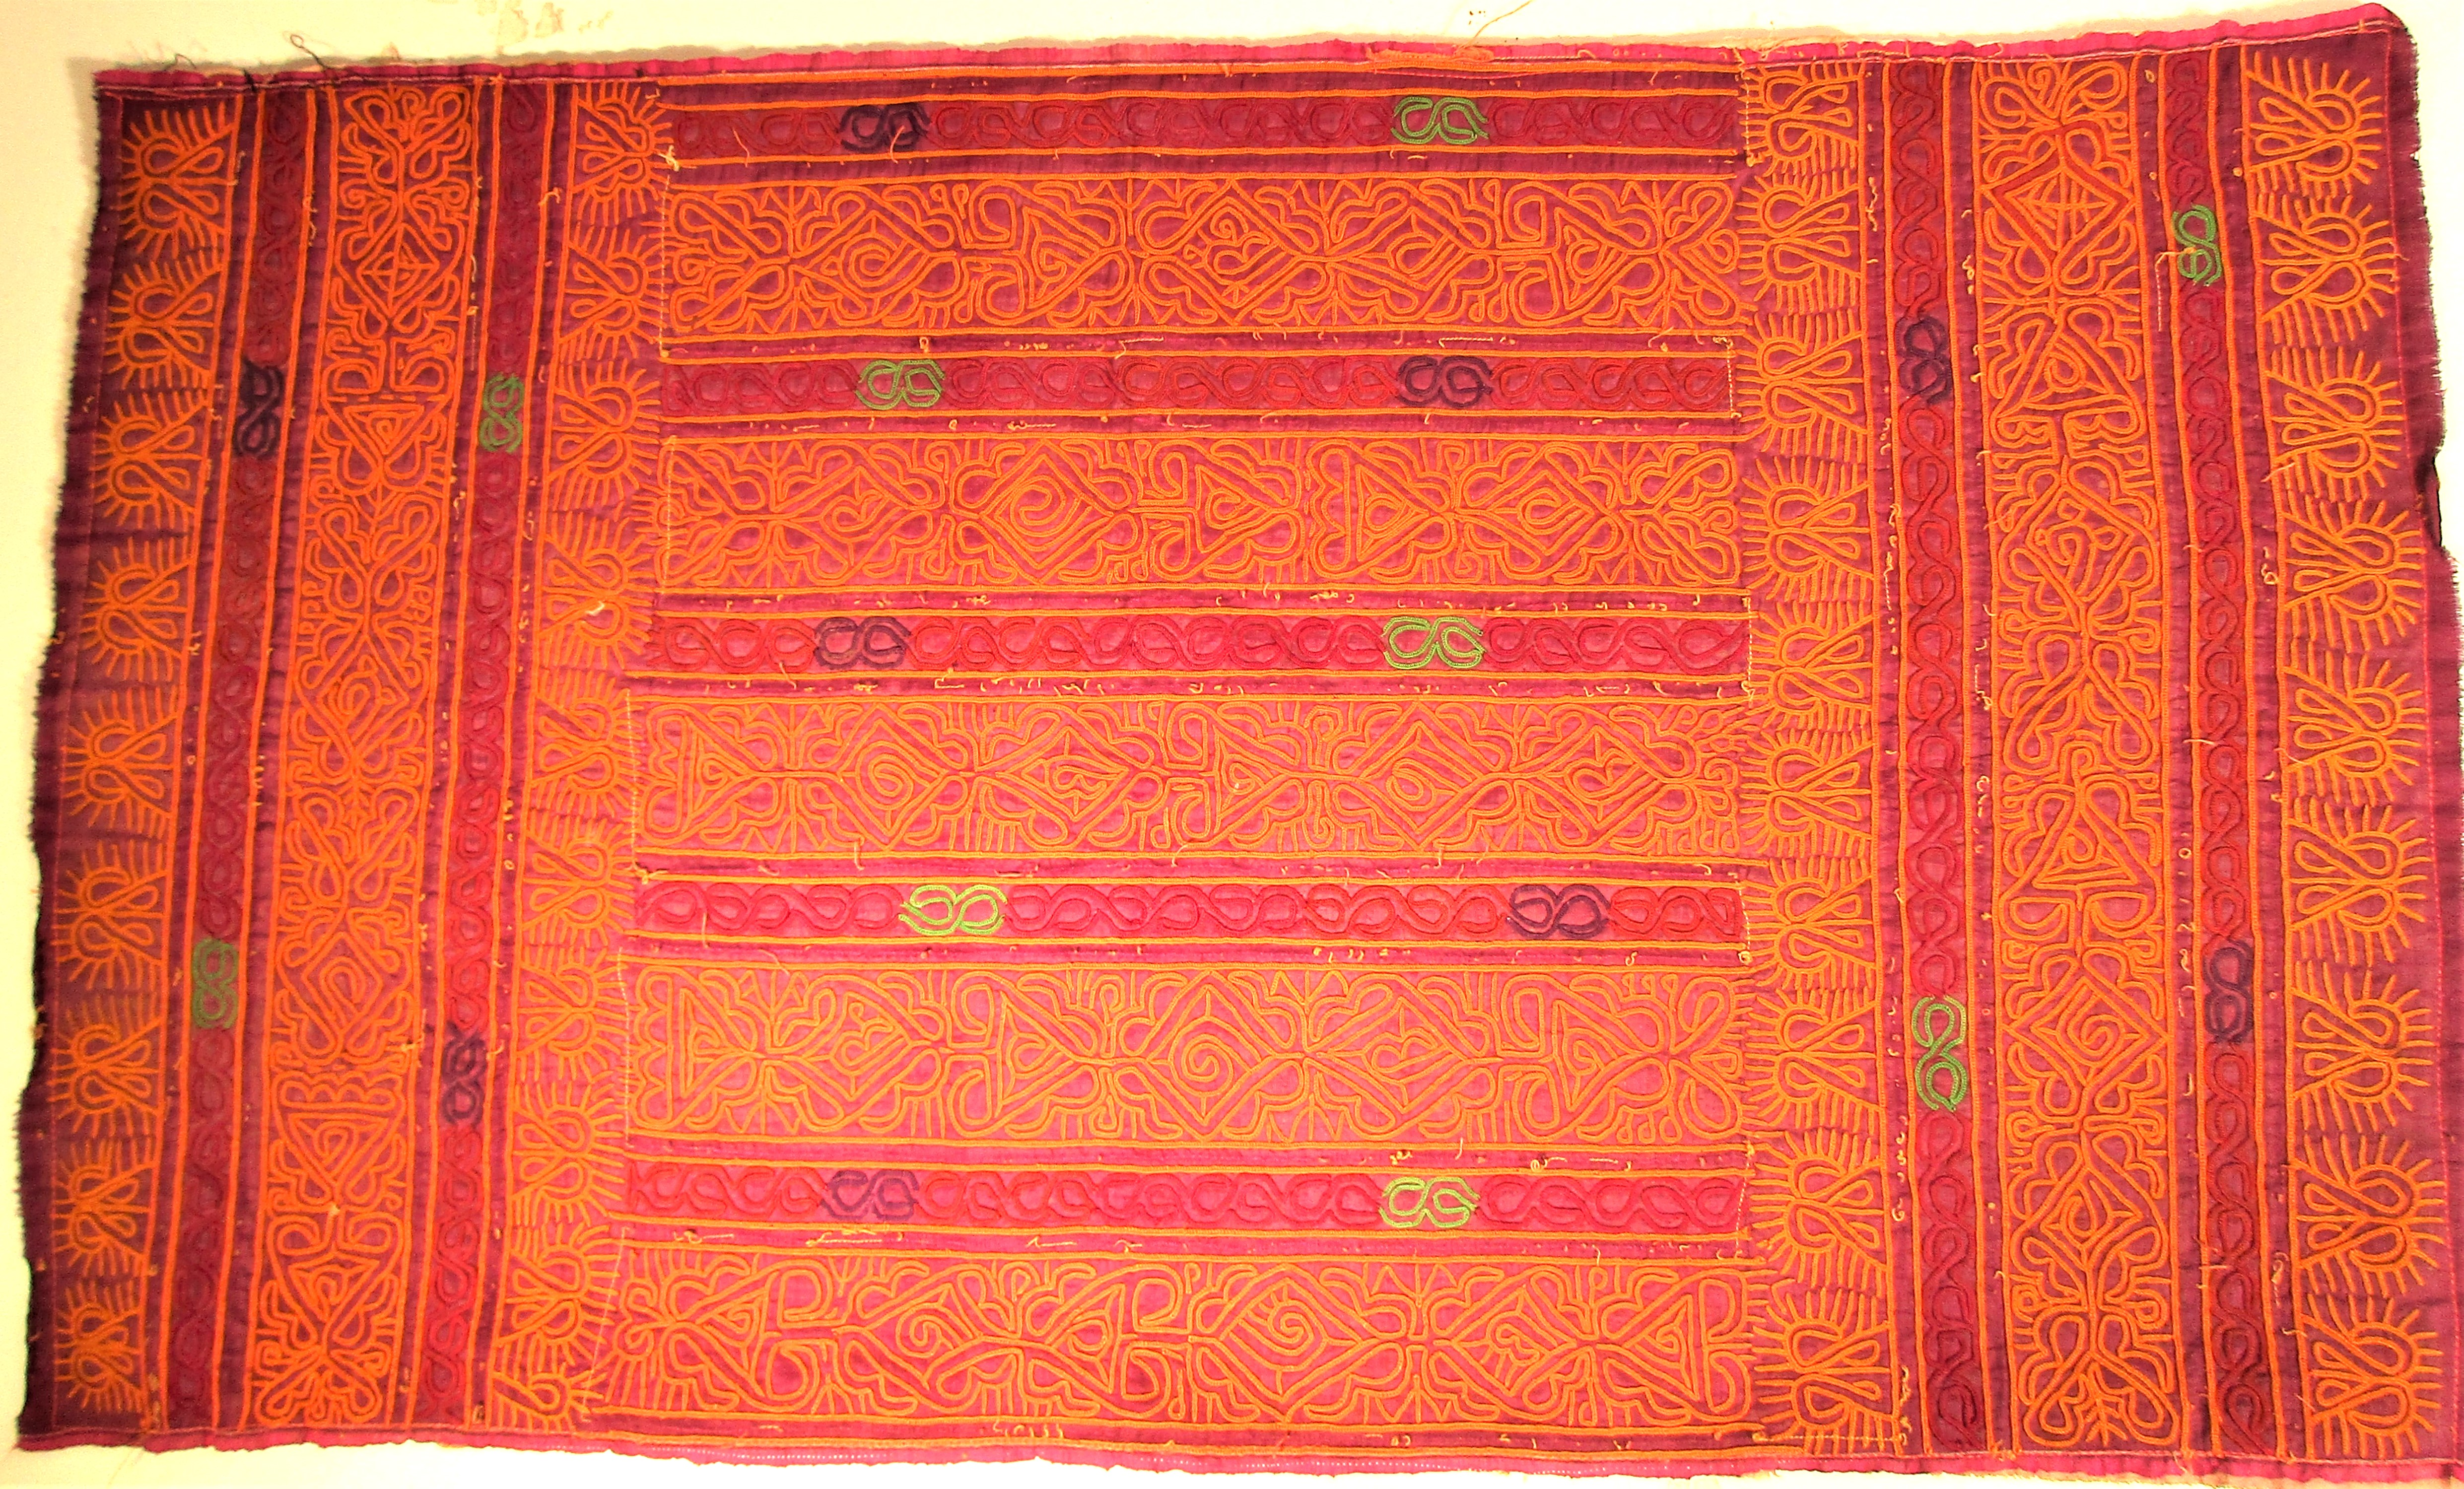 Hazara bread cover. Silk with chain stich decoration. . 76 x 45cm. Late 20th c. Notes: Textiles of